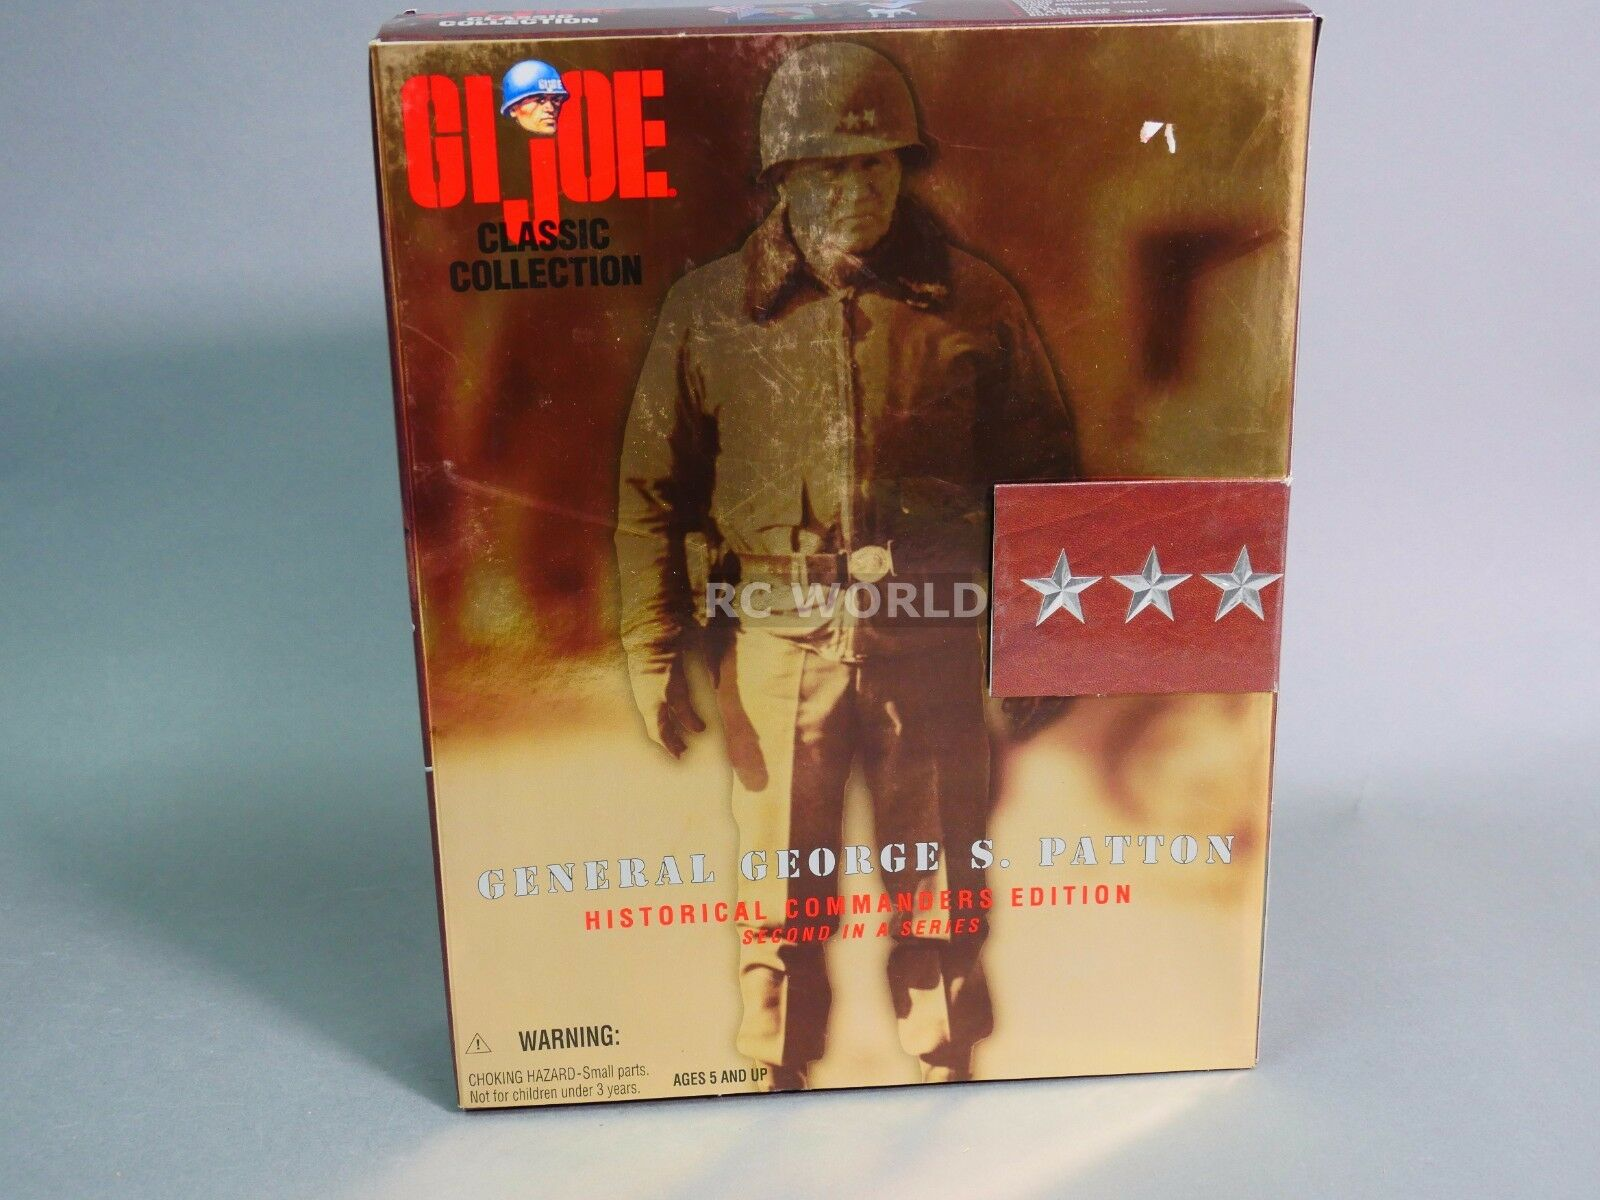 Vintage G.I JOE Classic Collection GENERAL GEORGE PATTON  12